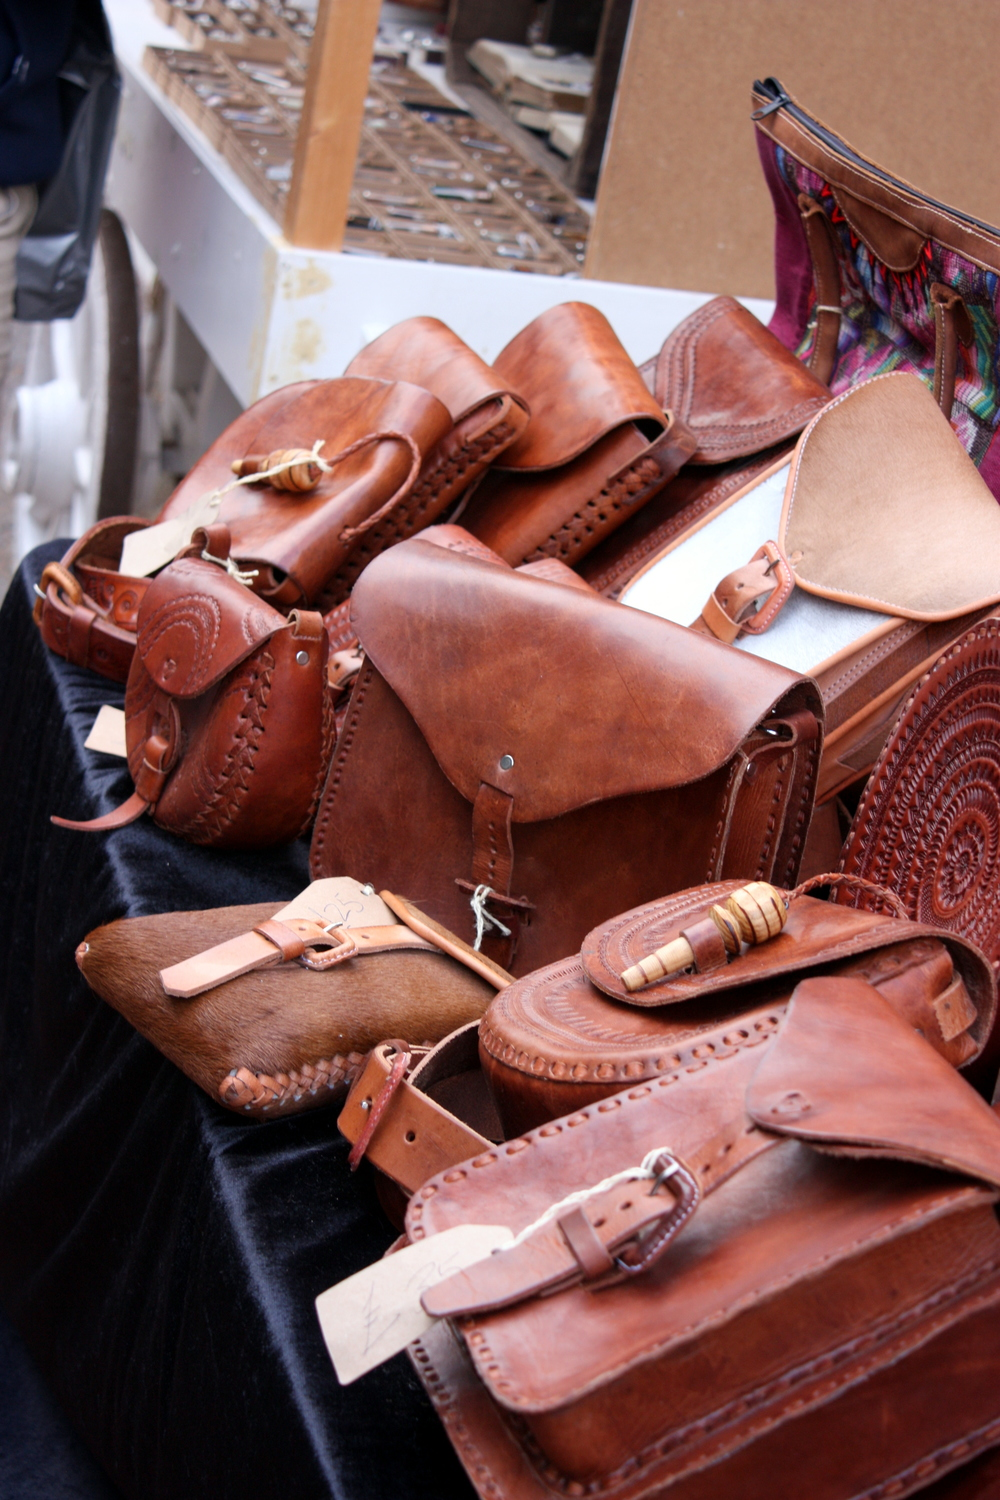 leather bags for sale on the Laines